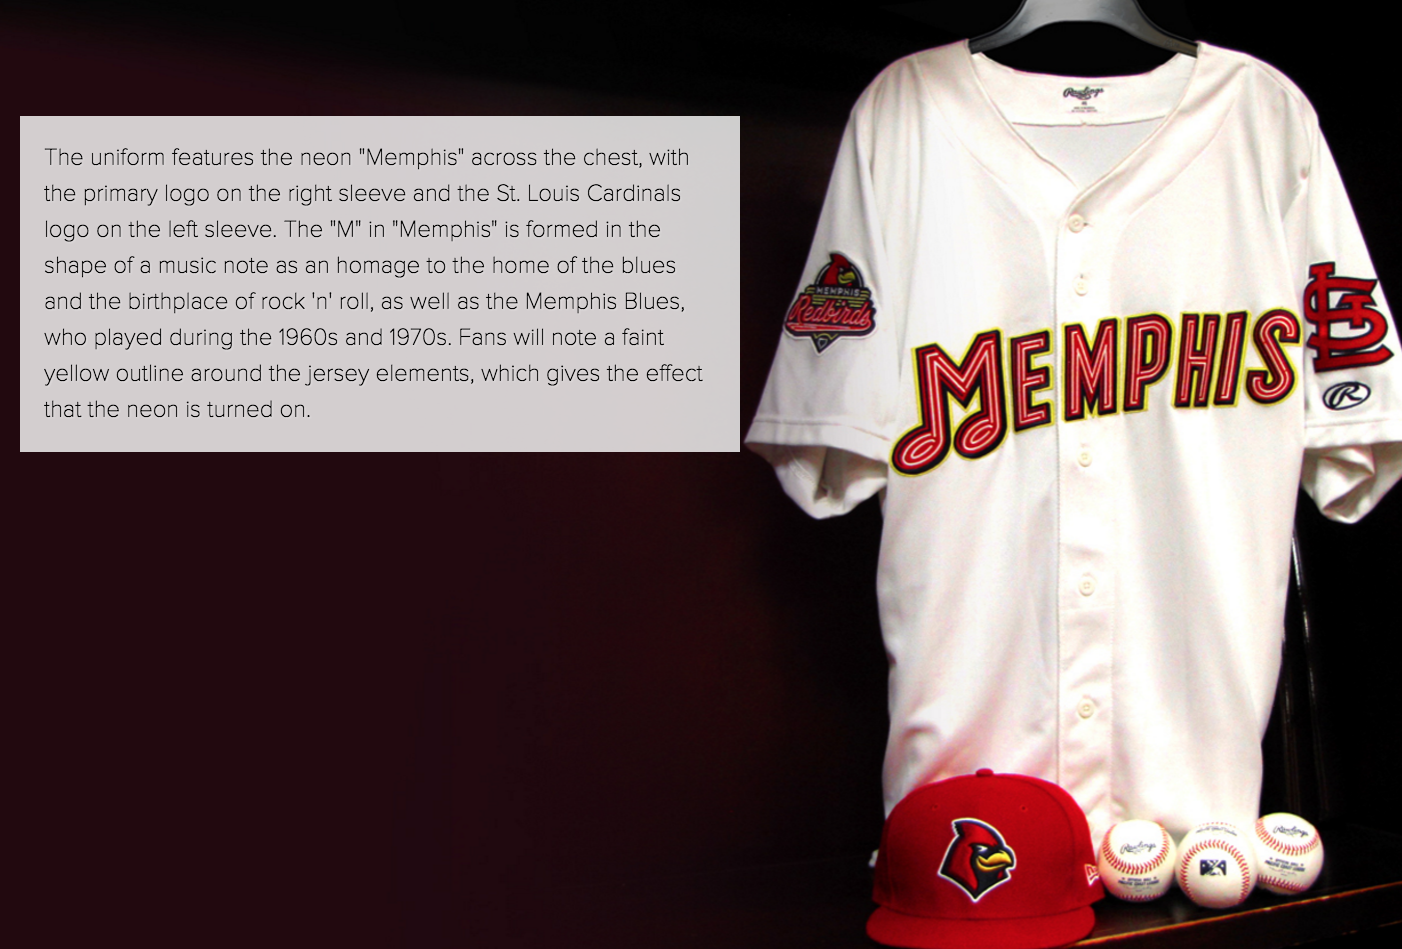 Courtesy of the Memphis Redbirds